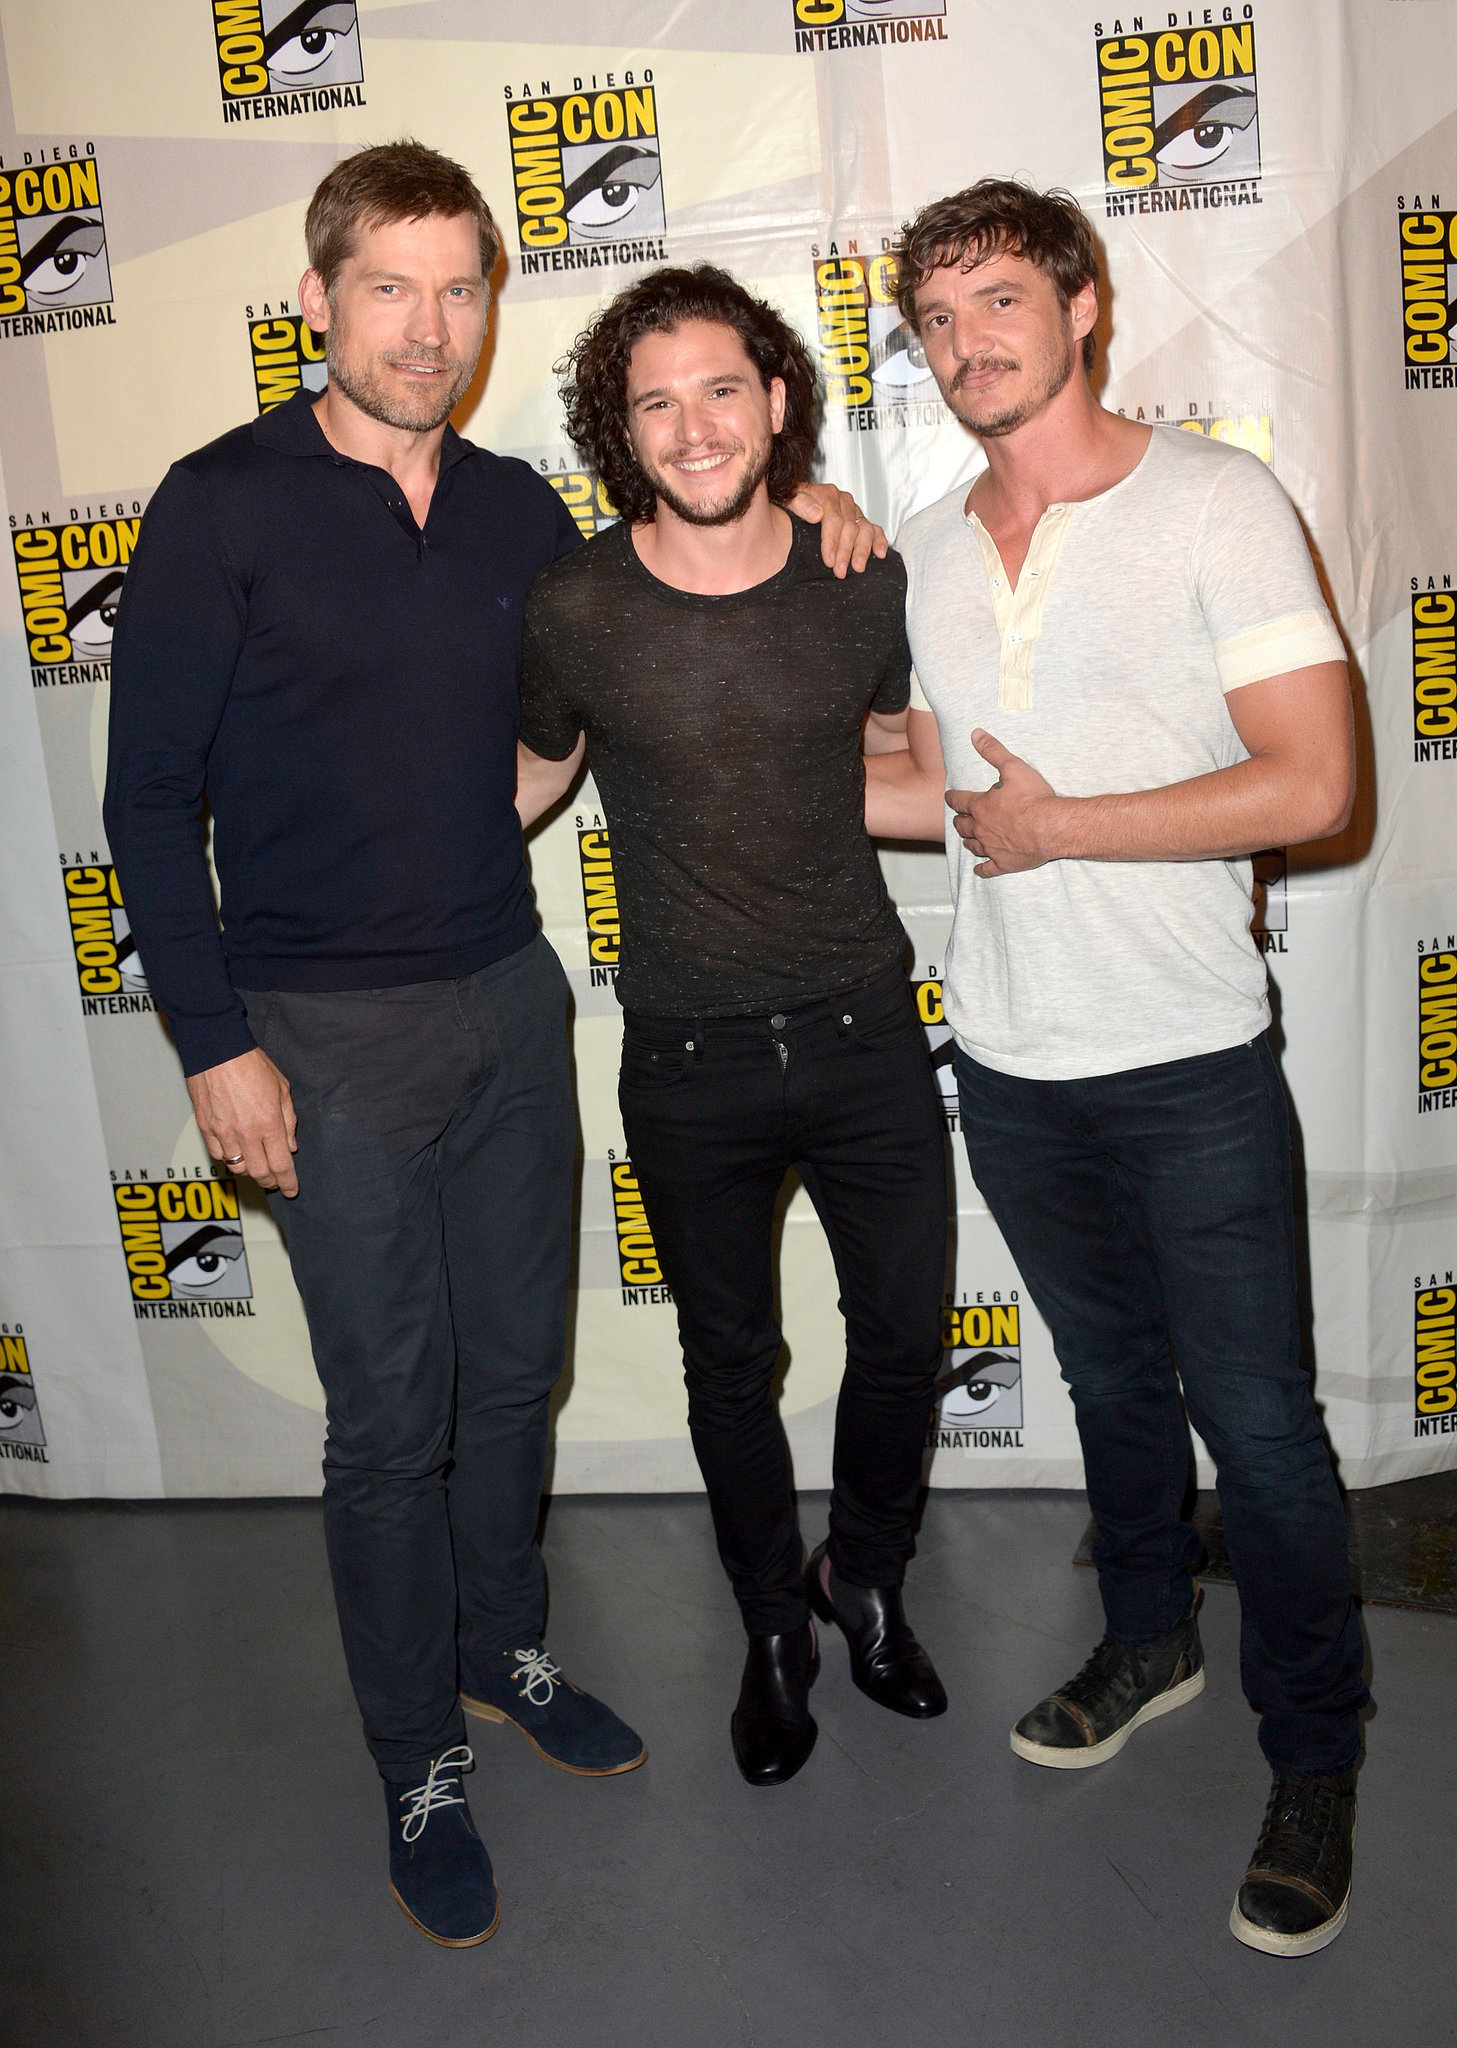 Photo of Nikolaj Coster-Waldau & his friend actor  Kit Harington - United States